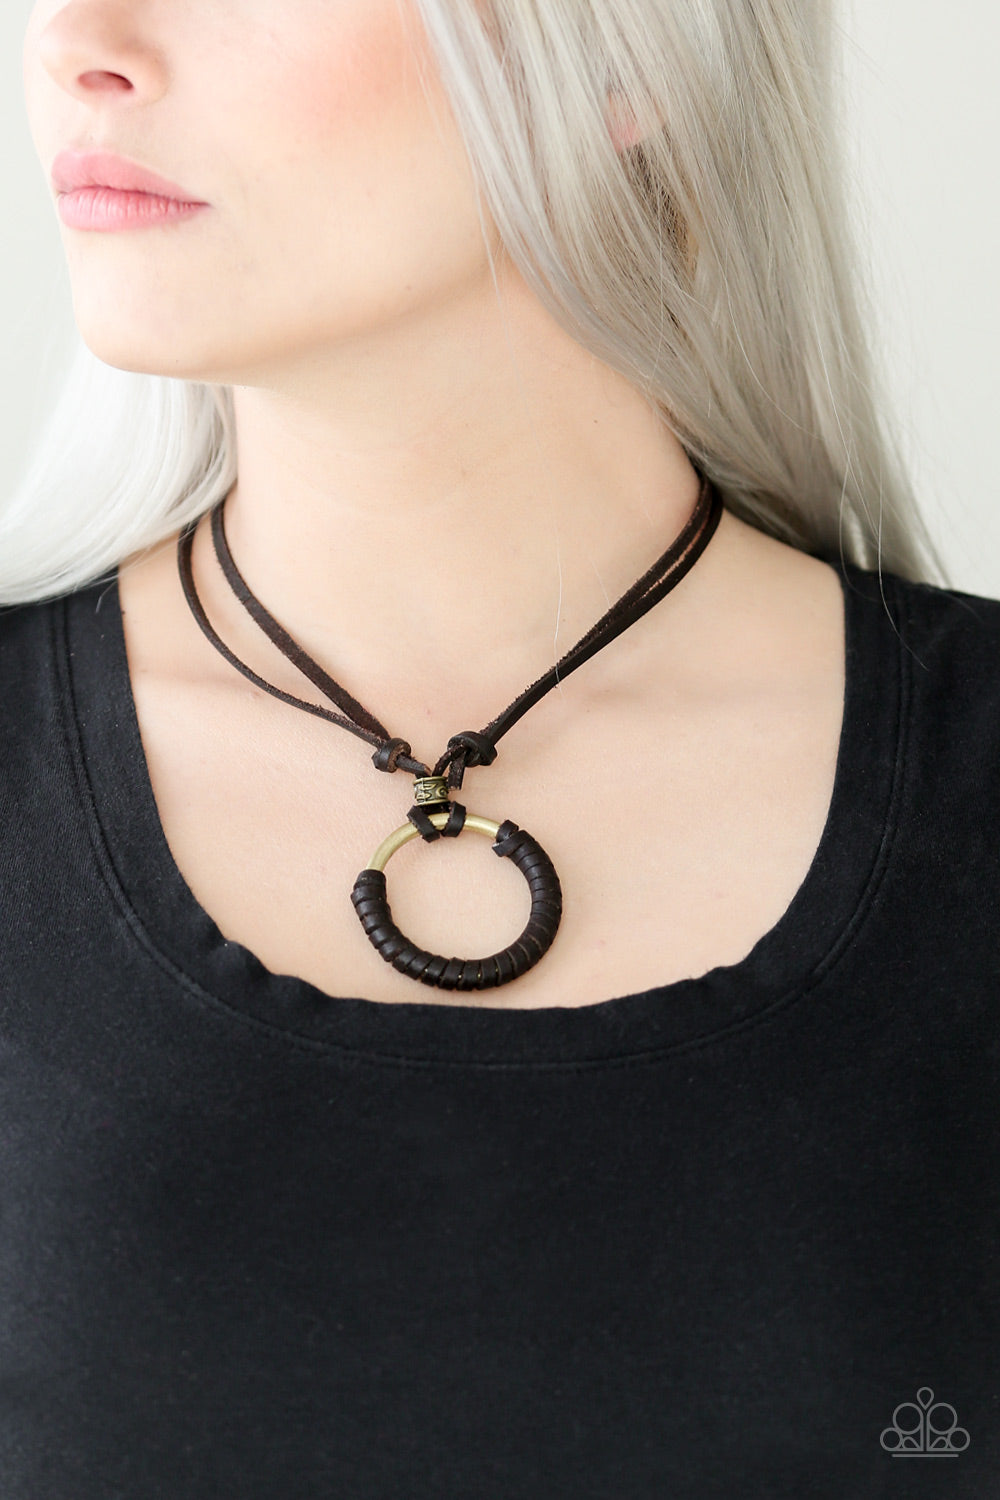 Get Over Grit! Brown Leather Paparazzi Necklace - JewelTonez Jewelry